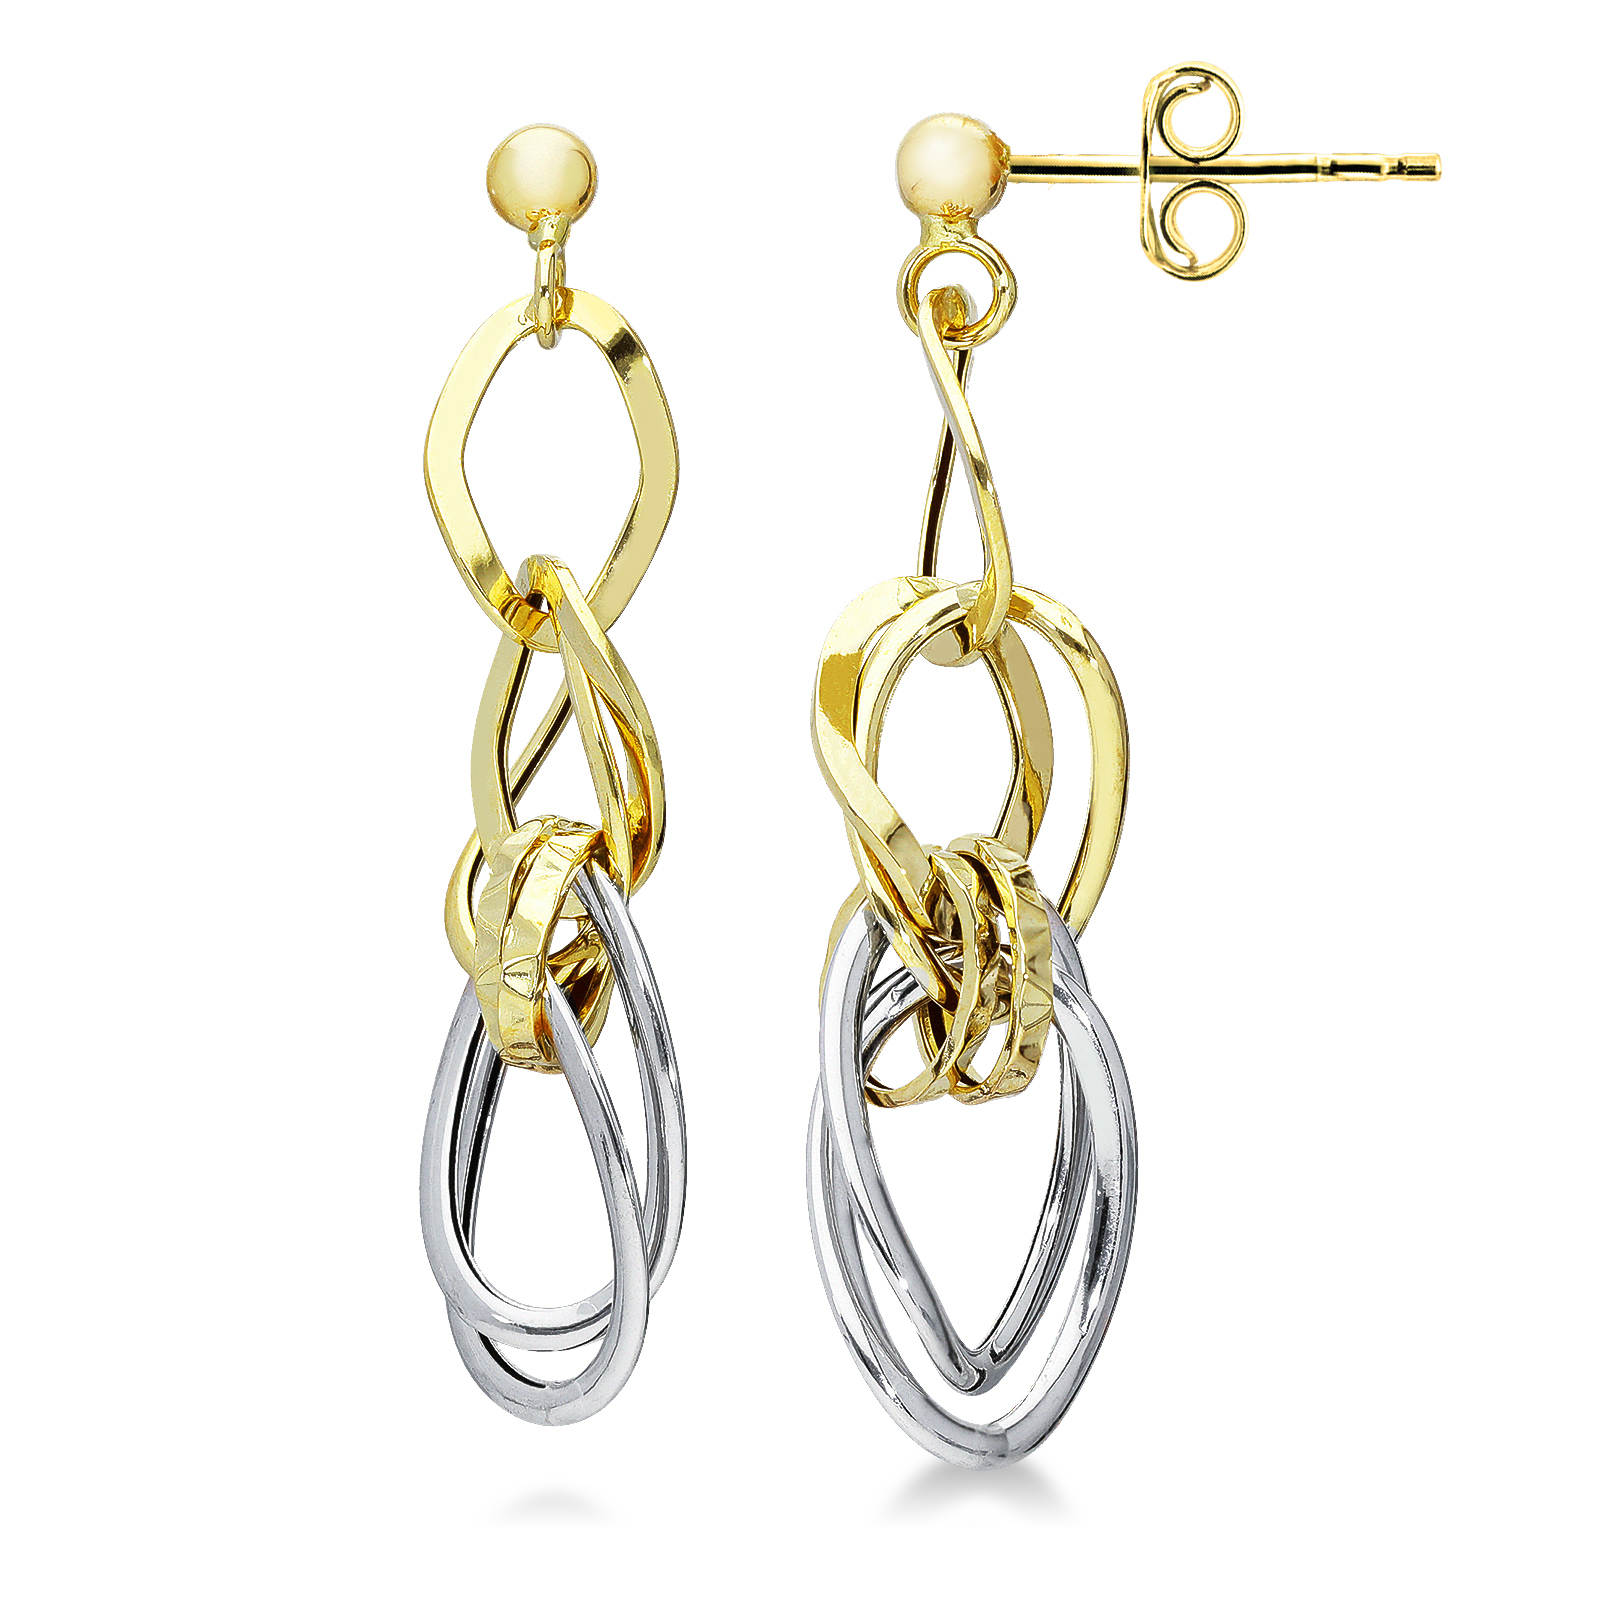 Earrings 18k White Gold, Gold with round elements